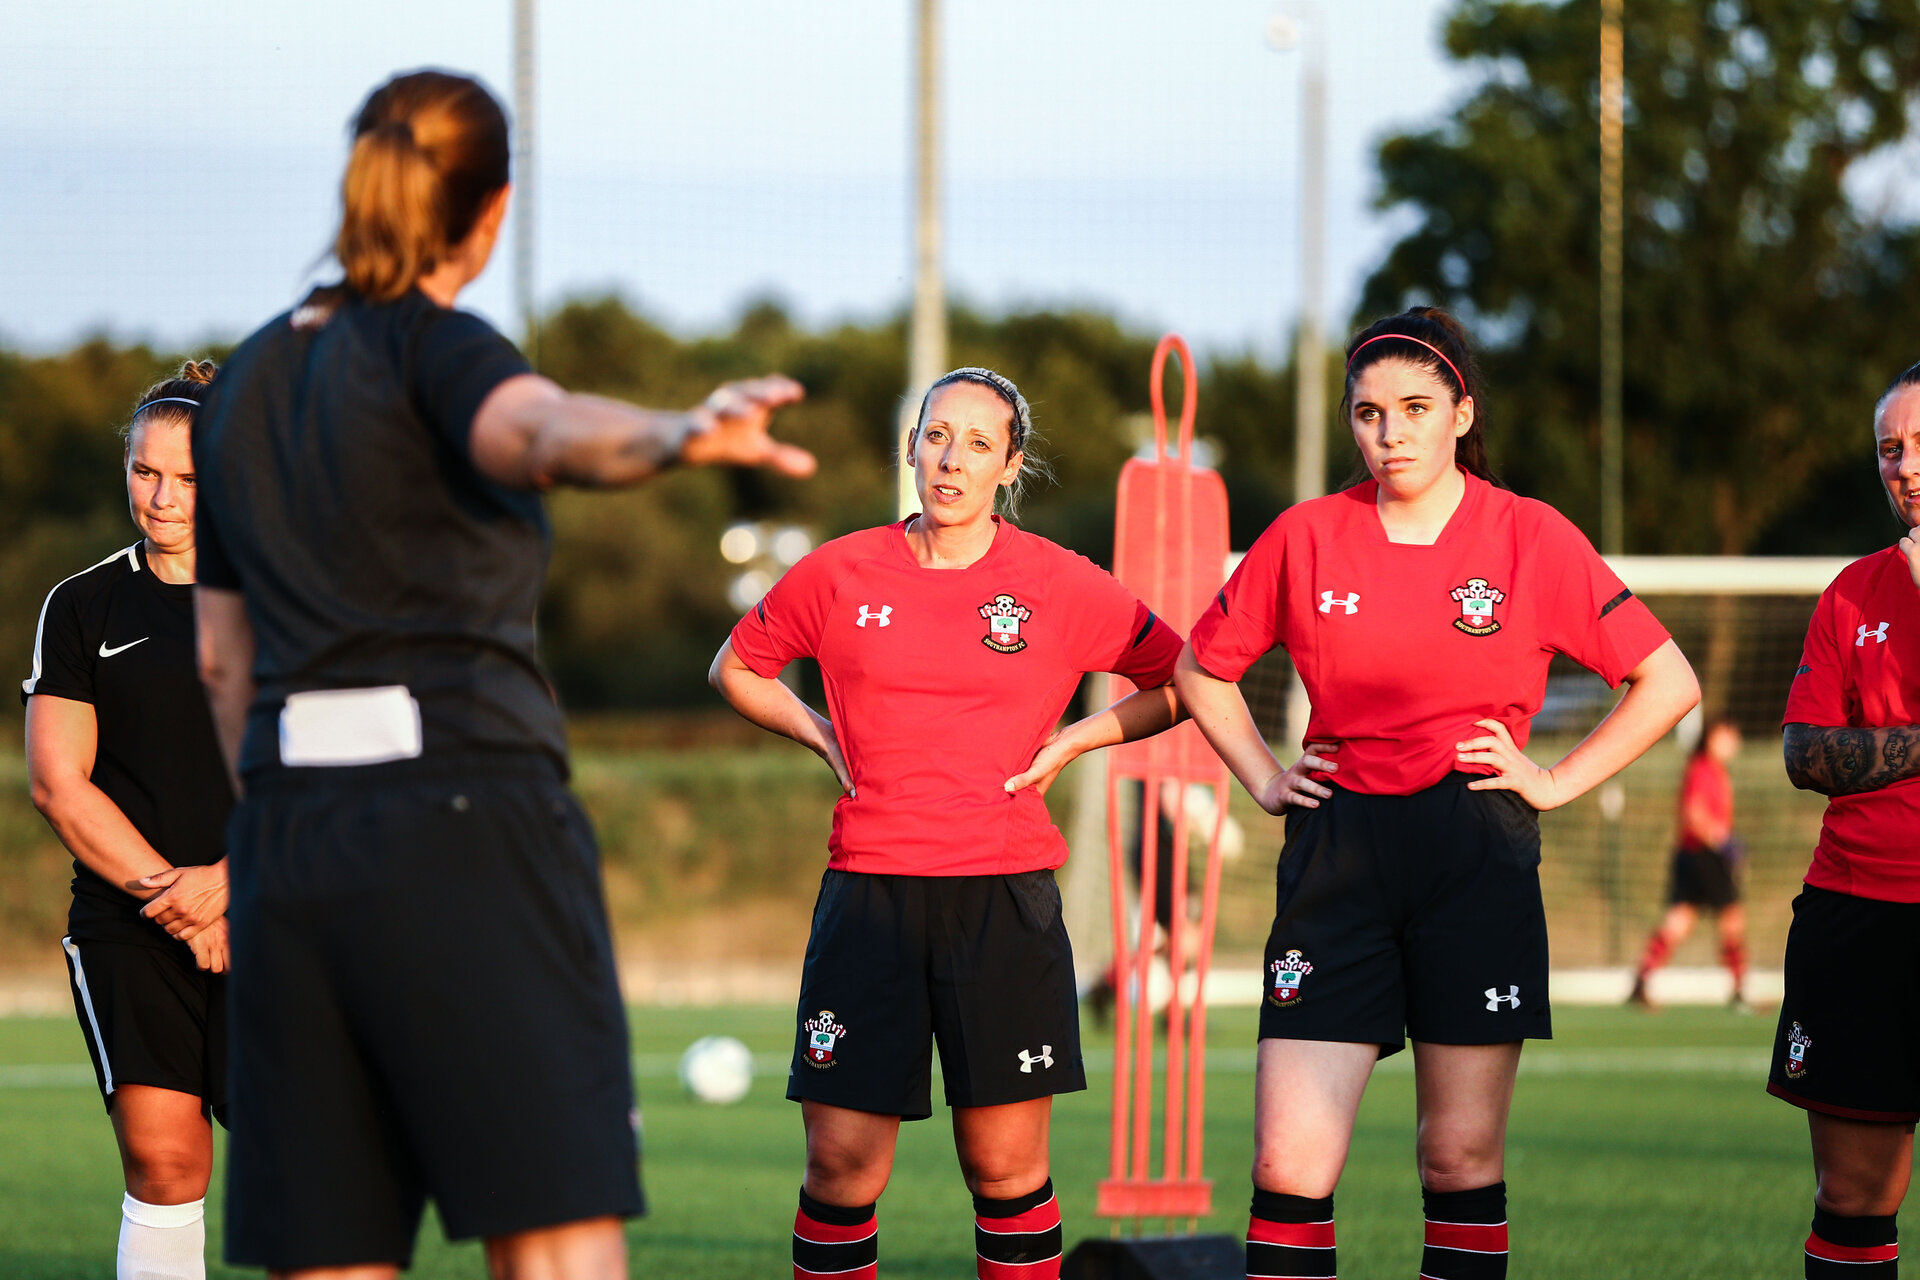 SOUTHAMPTON, ENGLAND - JULY 24: Southampton FC Girls take part in Training and Team building at Staplewood Complex on July 24, 2018 in Southampton, England. (Photo by James Bridle - Southampton FC/Southampton FC via Getty Images)